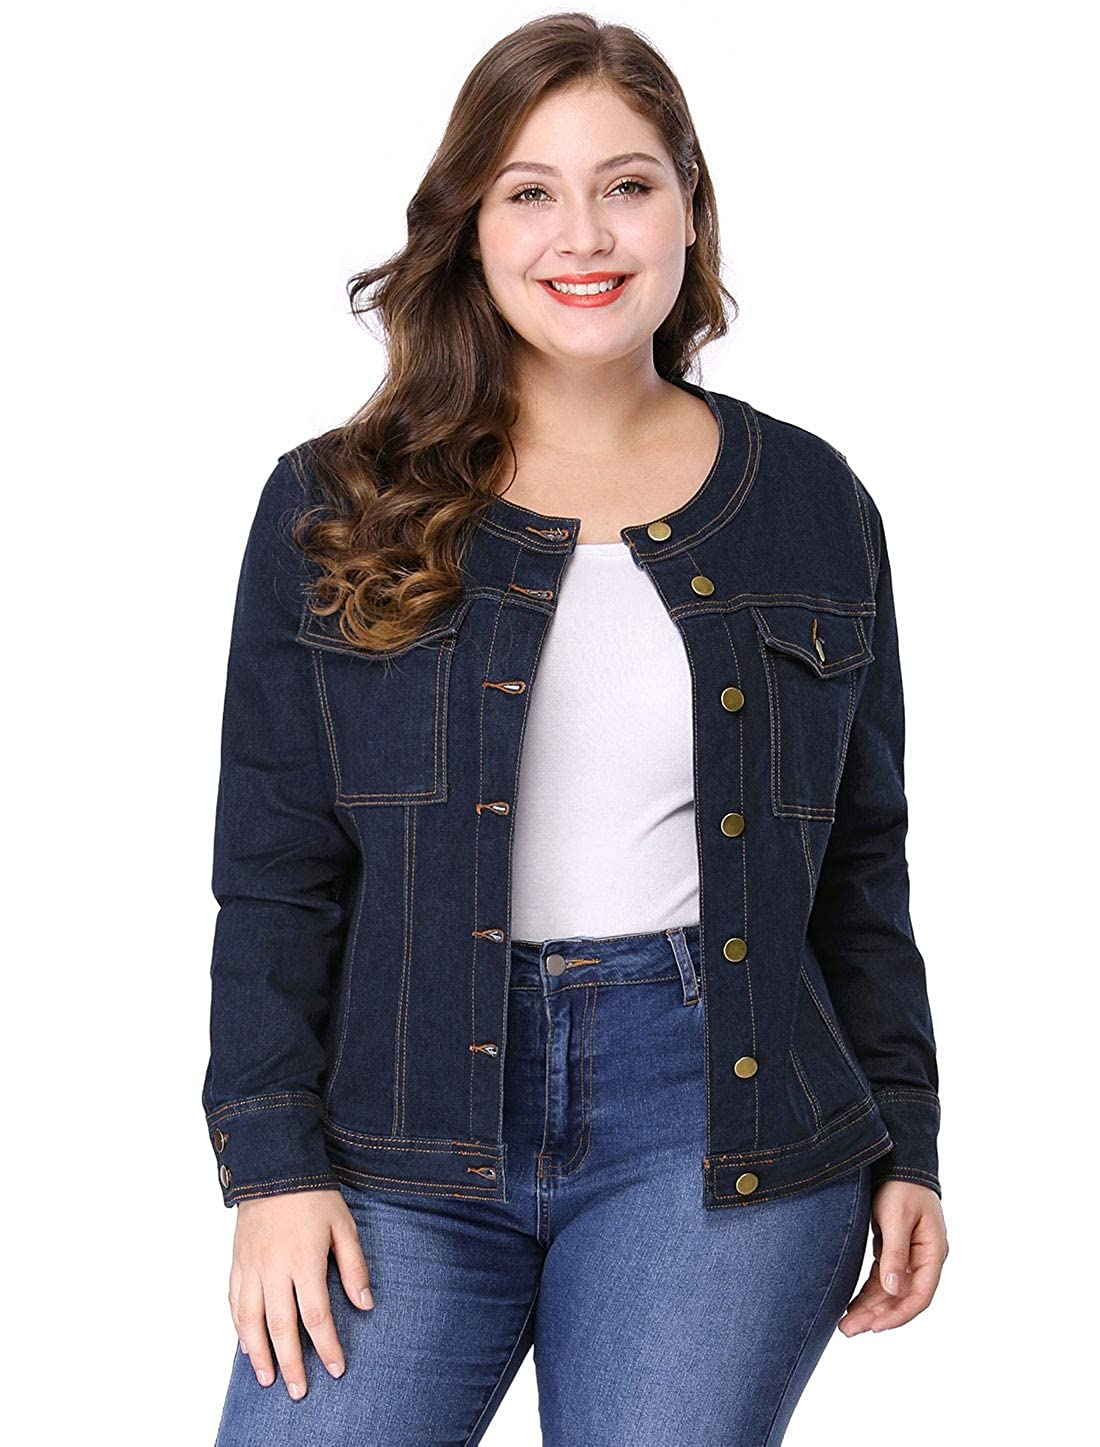 Agnes Orinda Women's Plus Size Long Sleeves Collarless Denim Jacket